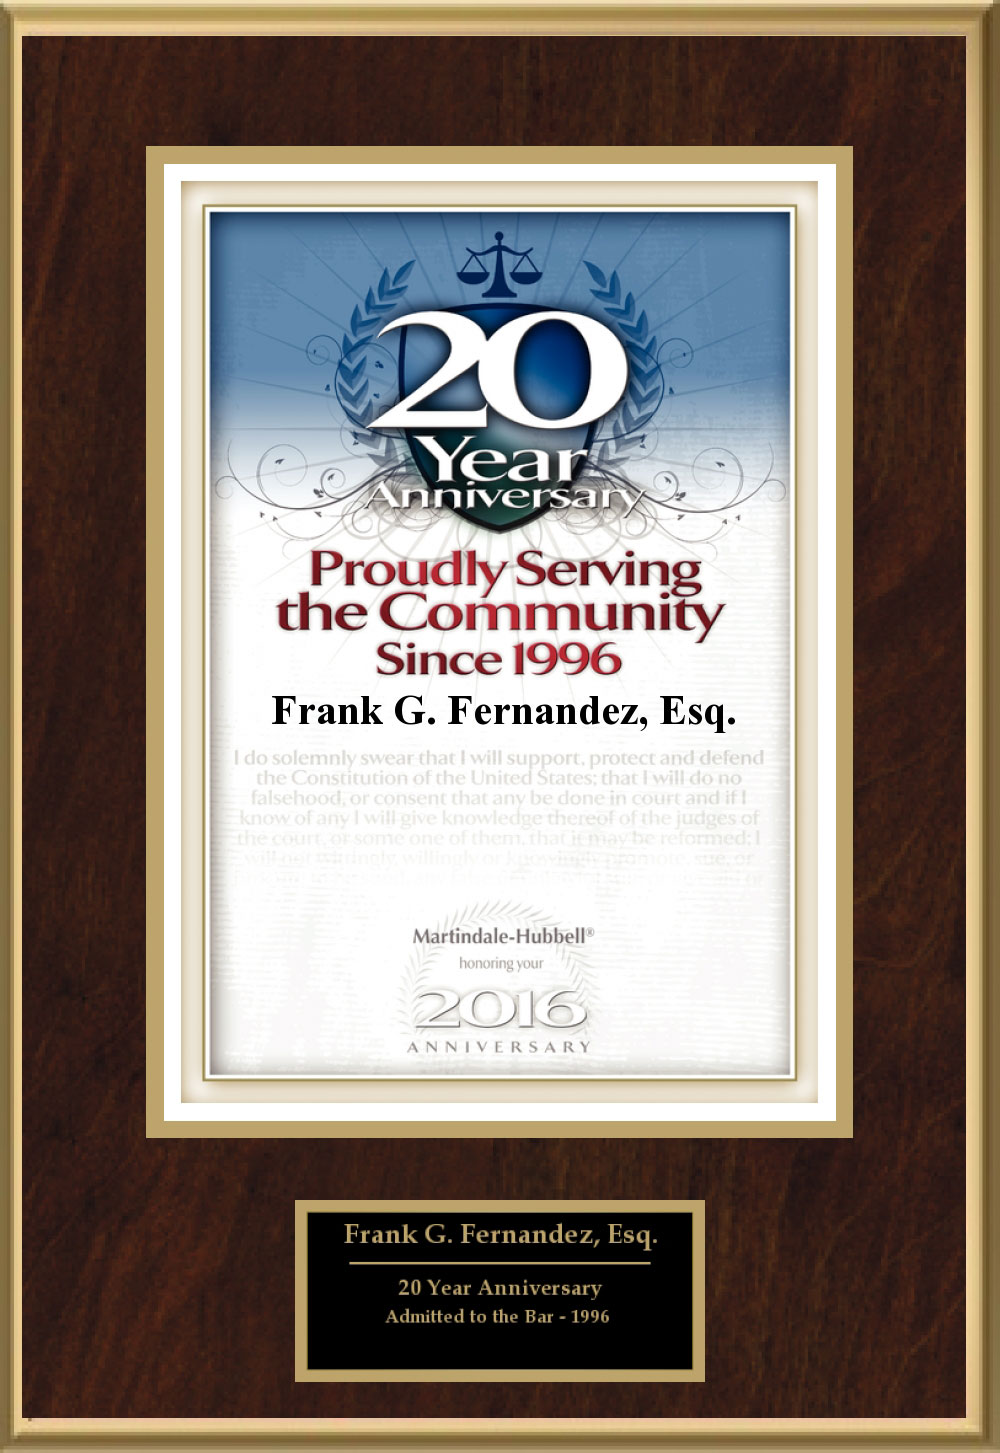 2015 award for 20 years serving the Tampa community